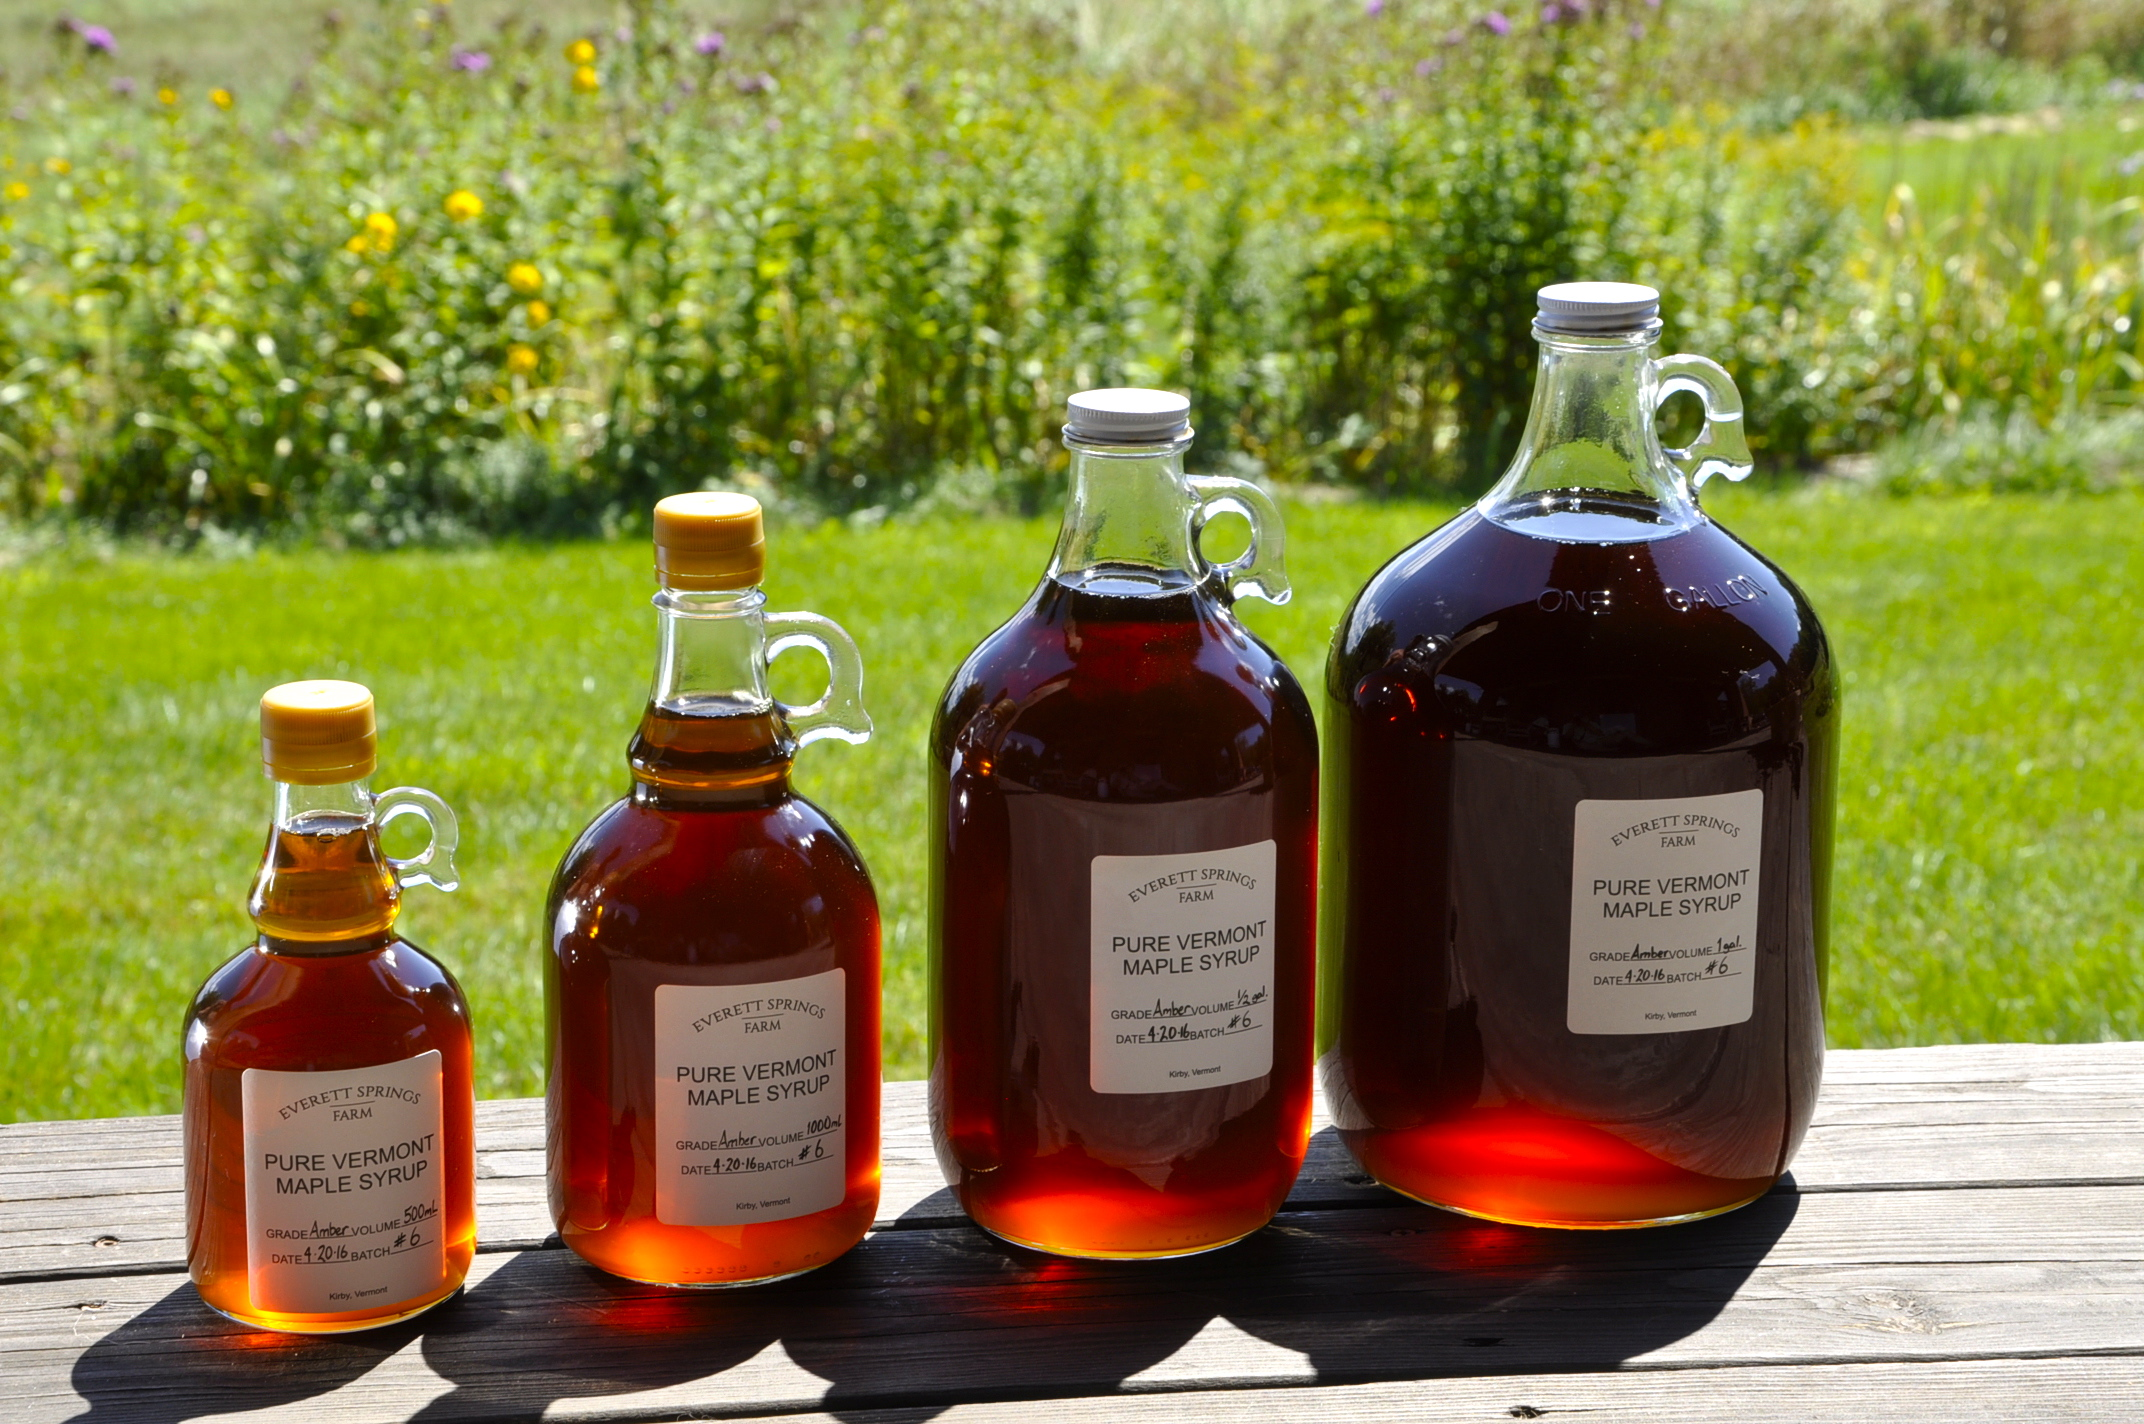 "Our sugar maples yield sap that process into three grades of syrup: Golden Delicate; Grade Amber Color - Rich Taste and Grade A Dark - Robust Taste. Though syrup in each bottle above may appear to vary by color, but all four bottles contain ""Amber Color - Rich Taste"". The syrup in the varying-sized bottles catches light according to its depth. Every season varies according to the whim of the sugar maples and all the imaginable natural variables."